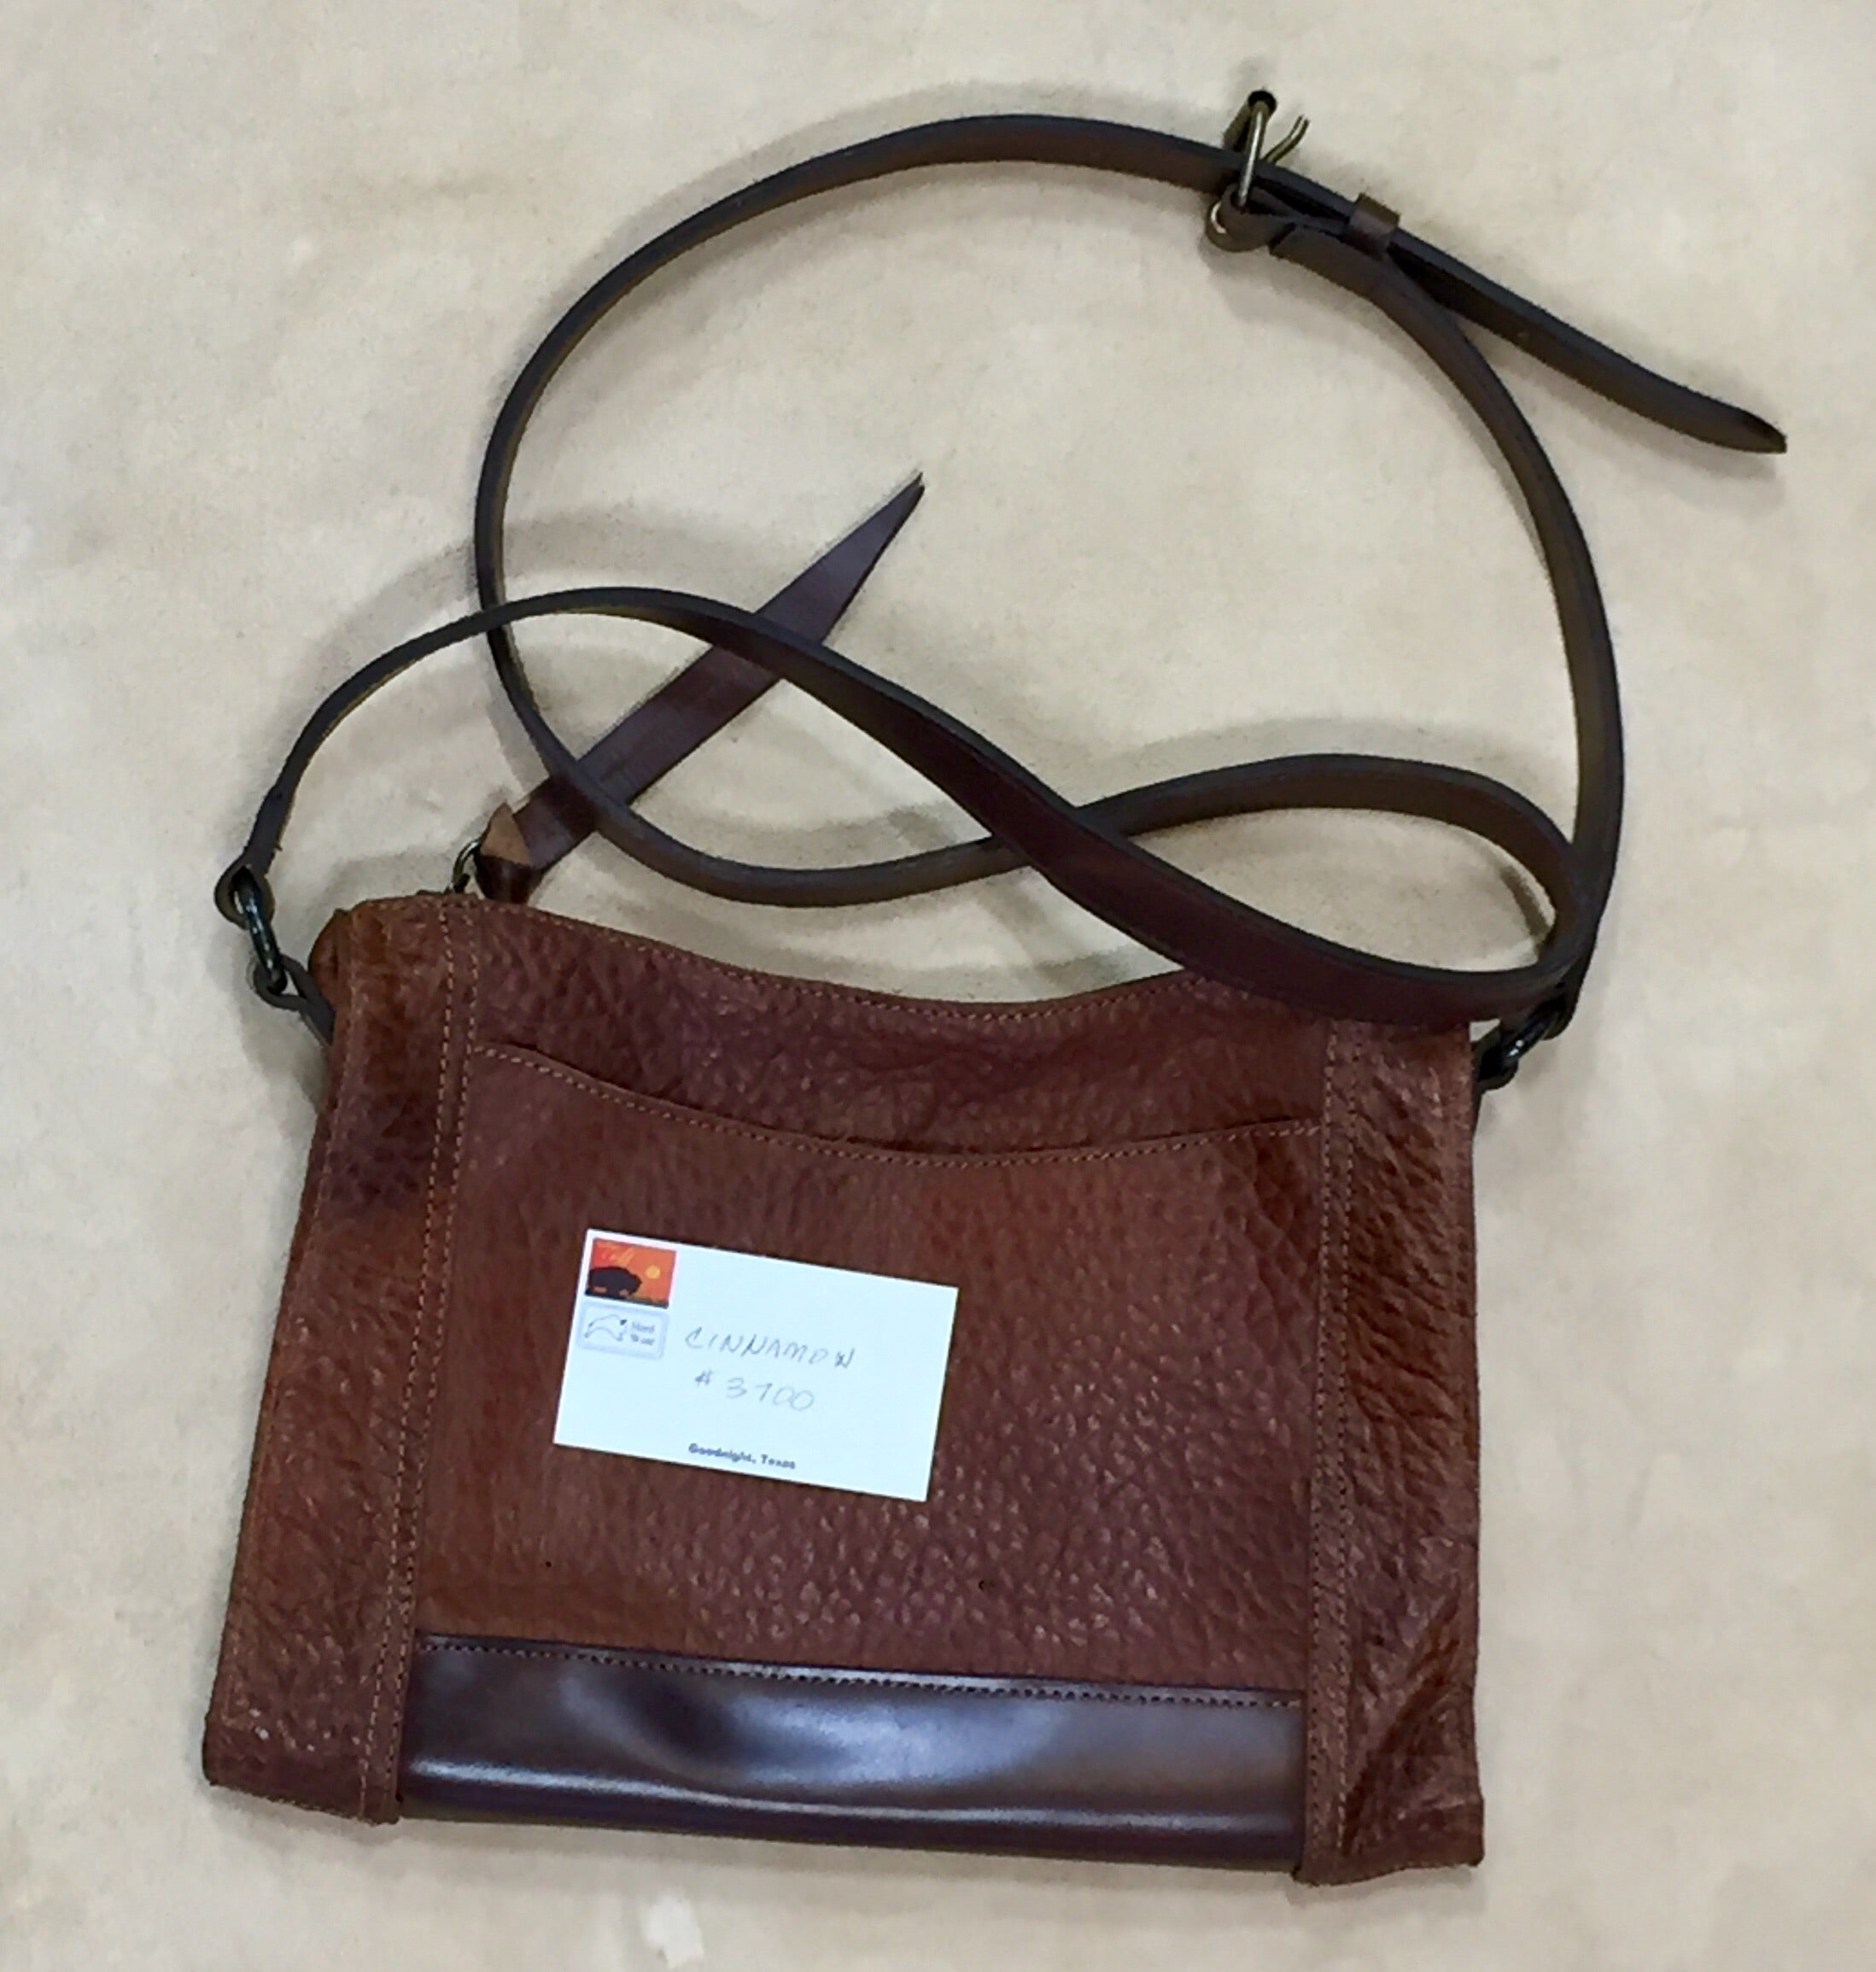 Loma Vista Medium Crossbody Purse #3700